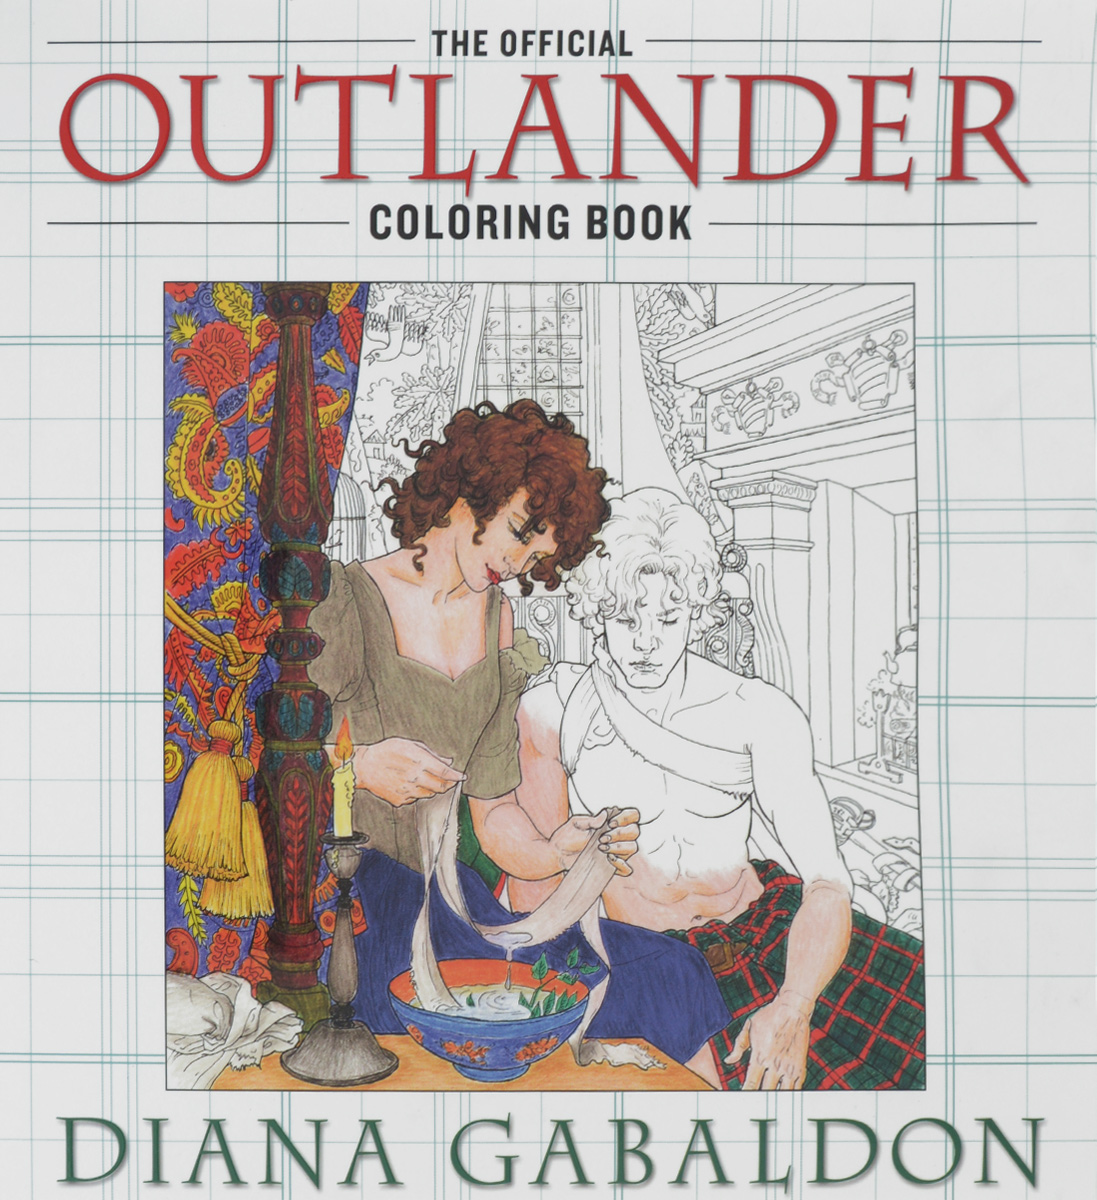 The Official Outlander: Coloring Book fashion a coloring book of designer looks and accessories